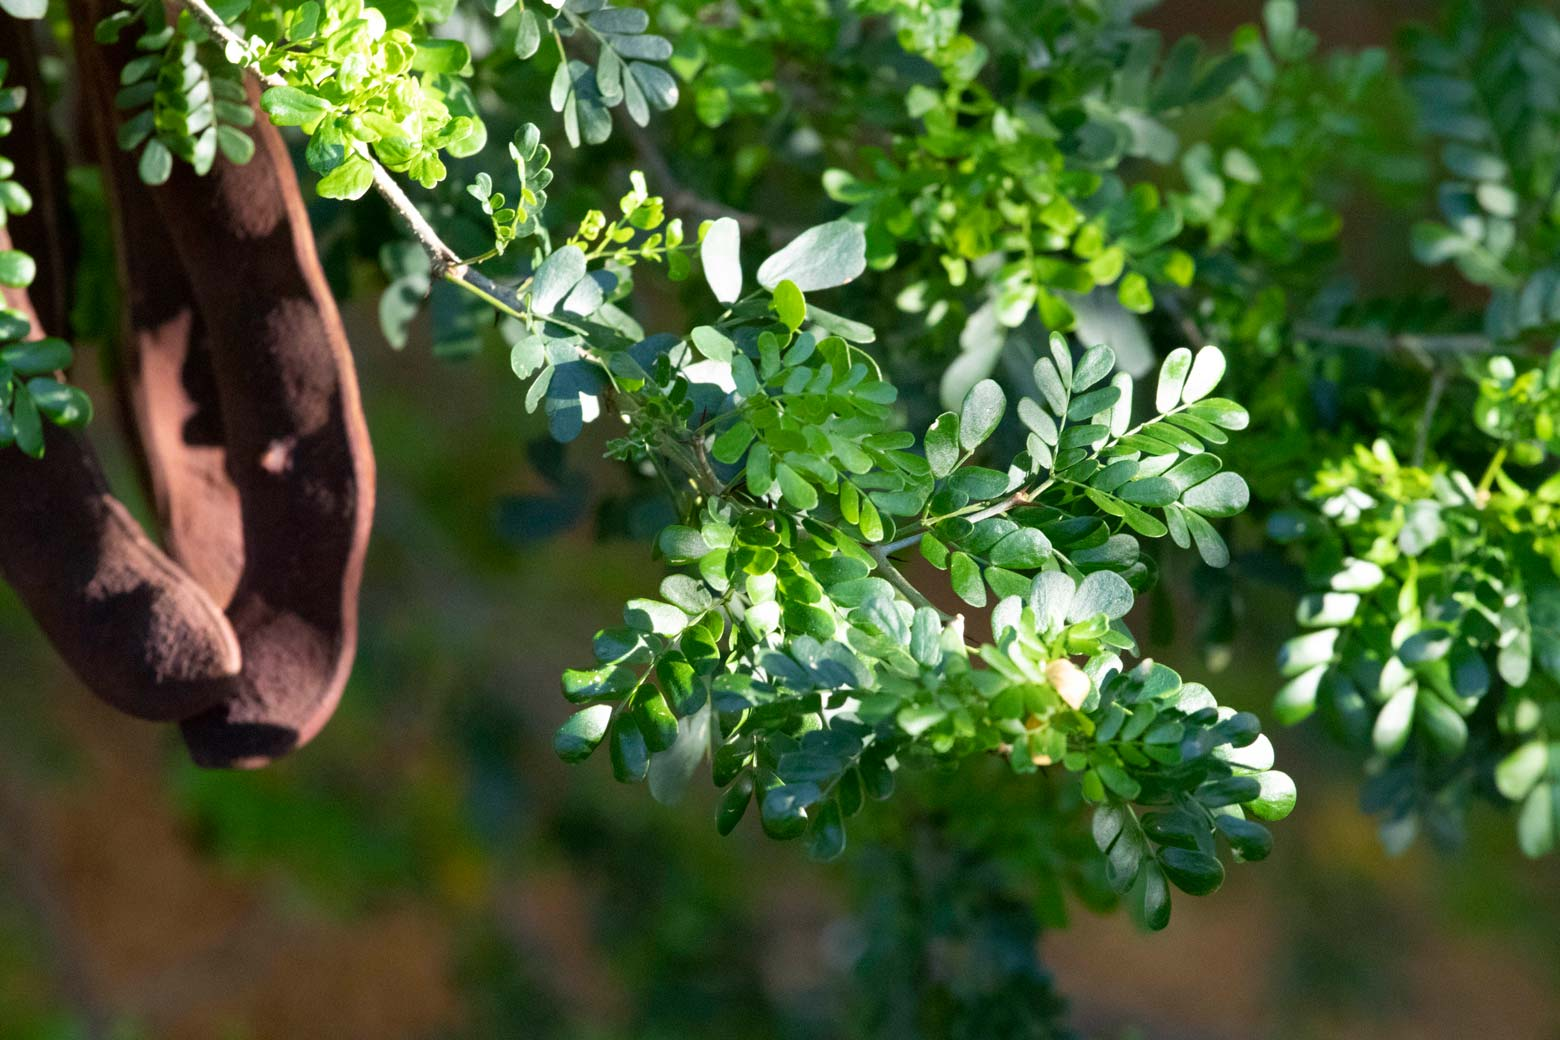 A close-up of the leaves of a Texas Ebony.